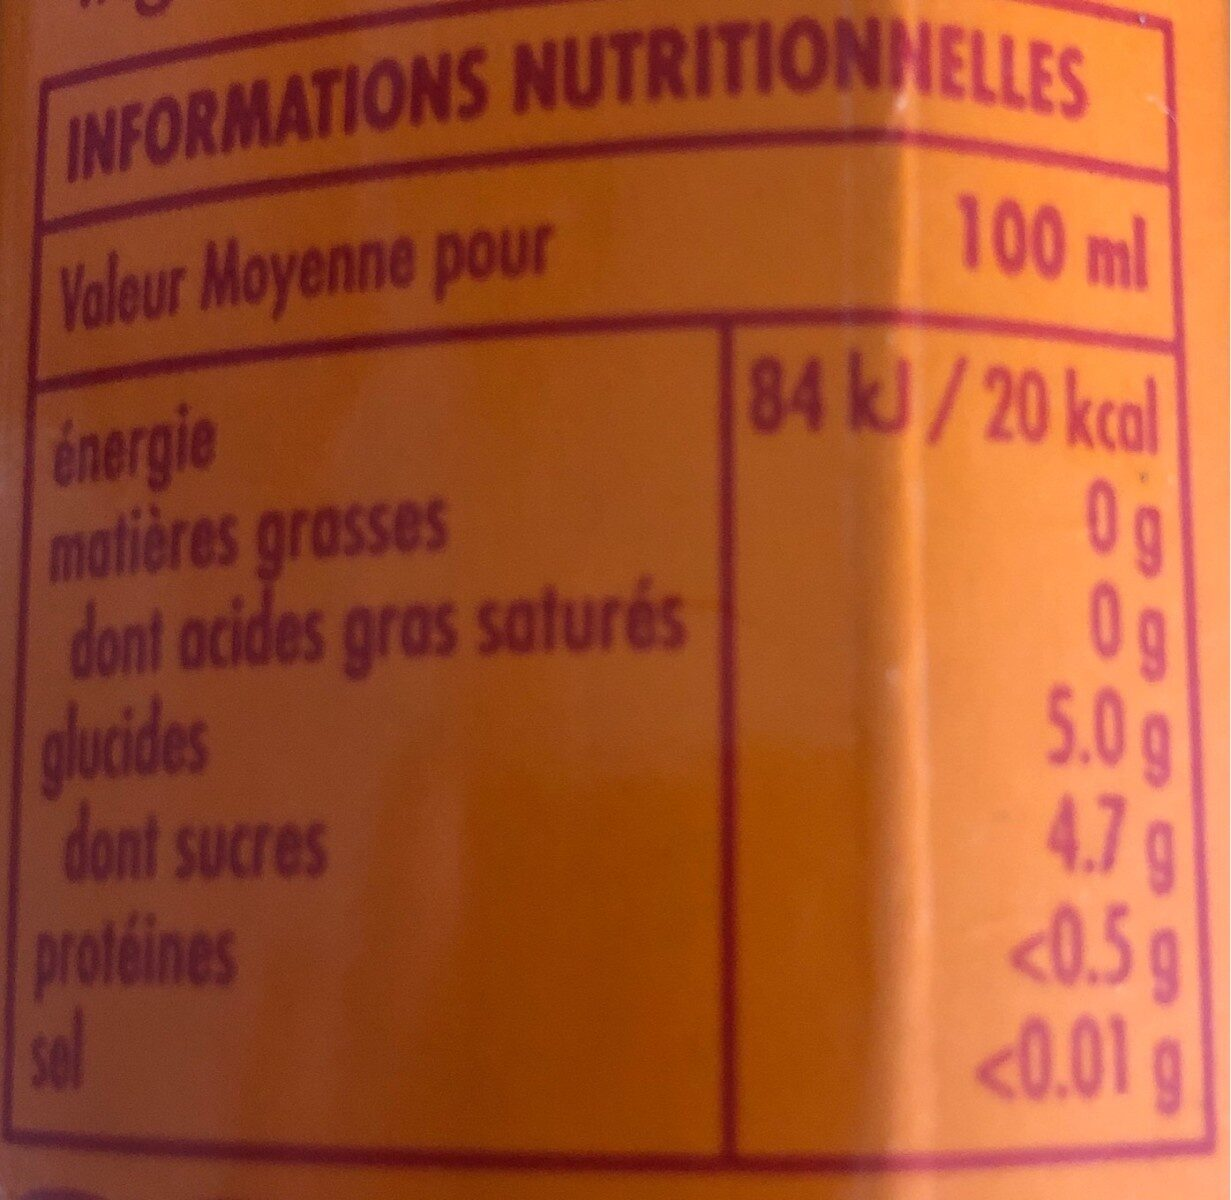 BOS ice rooibos peach - Informations nutritionnelles - fr